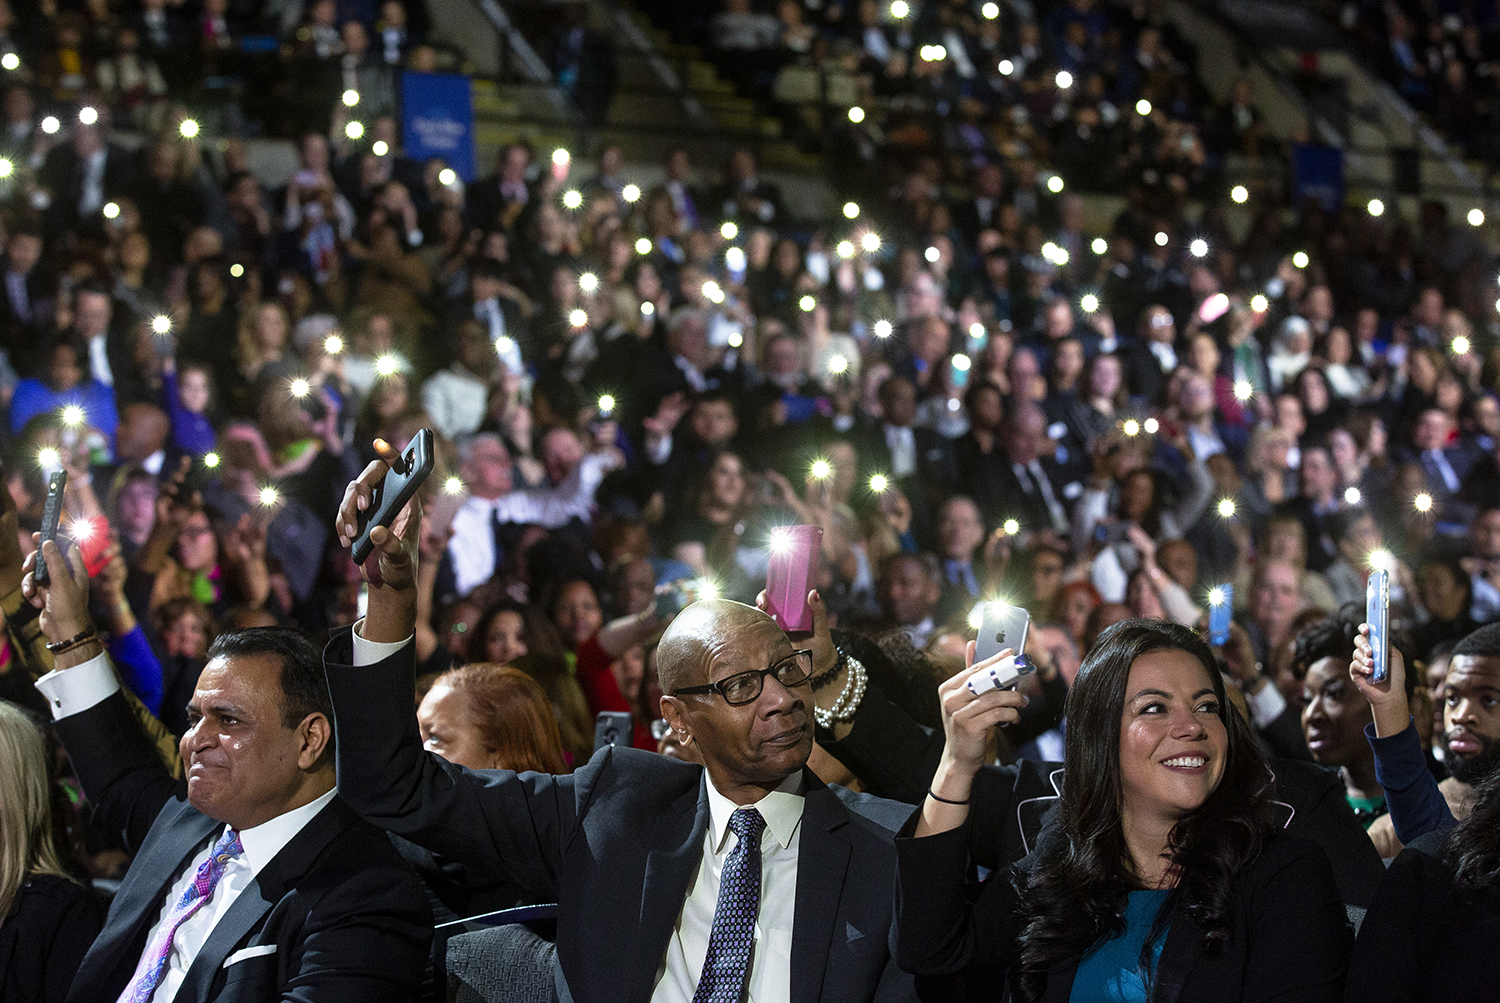 Audience members wave their cell phones to go with a song performed by Soul Children of Chicago during the Illinois Inaugural Ceremony Monday, Jan. 14, 2019 a the Bank of Springfield Center in Springfield, Ill. [Rich Saal/The State Journal-Register]